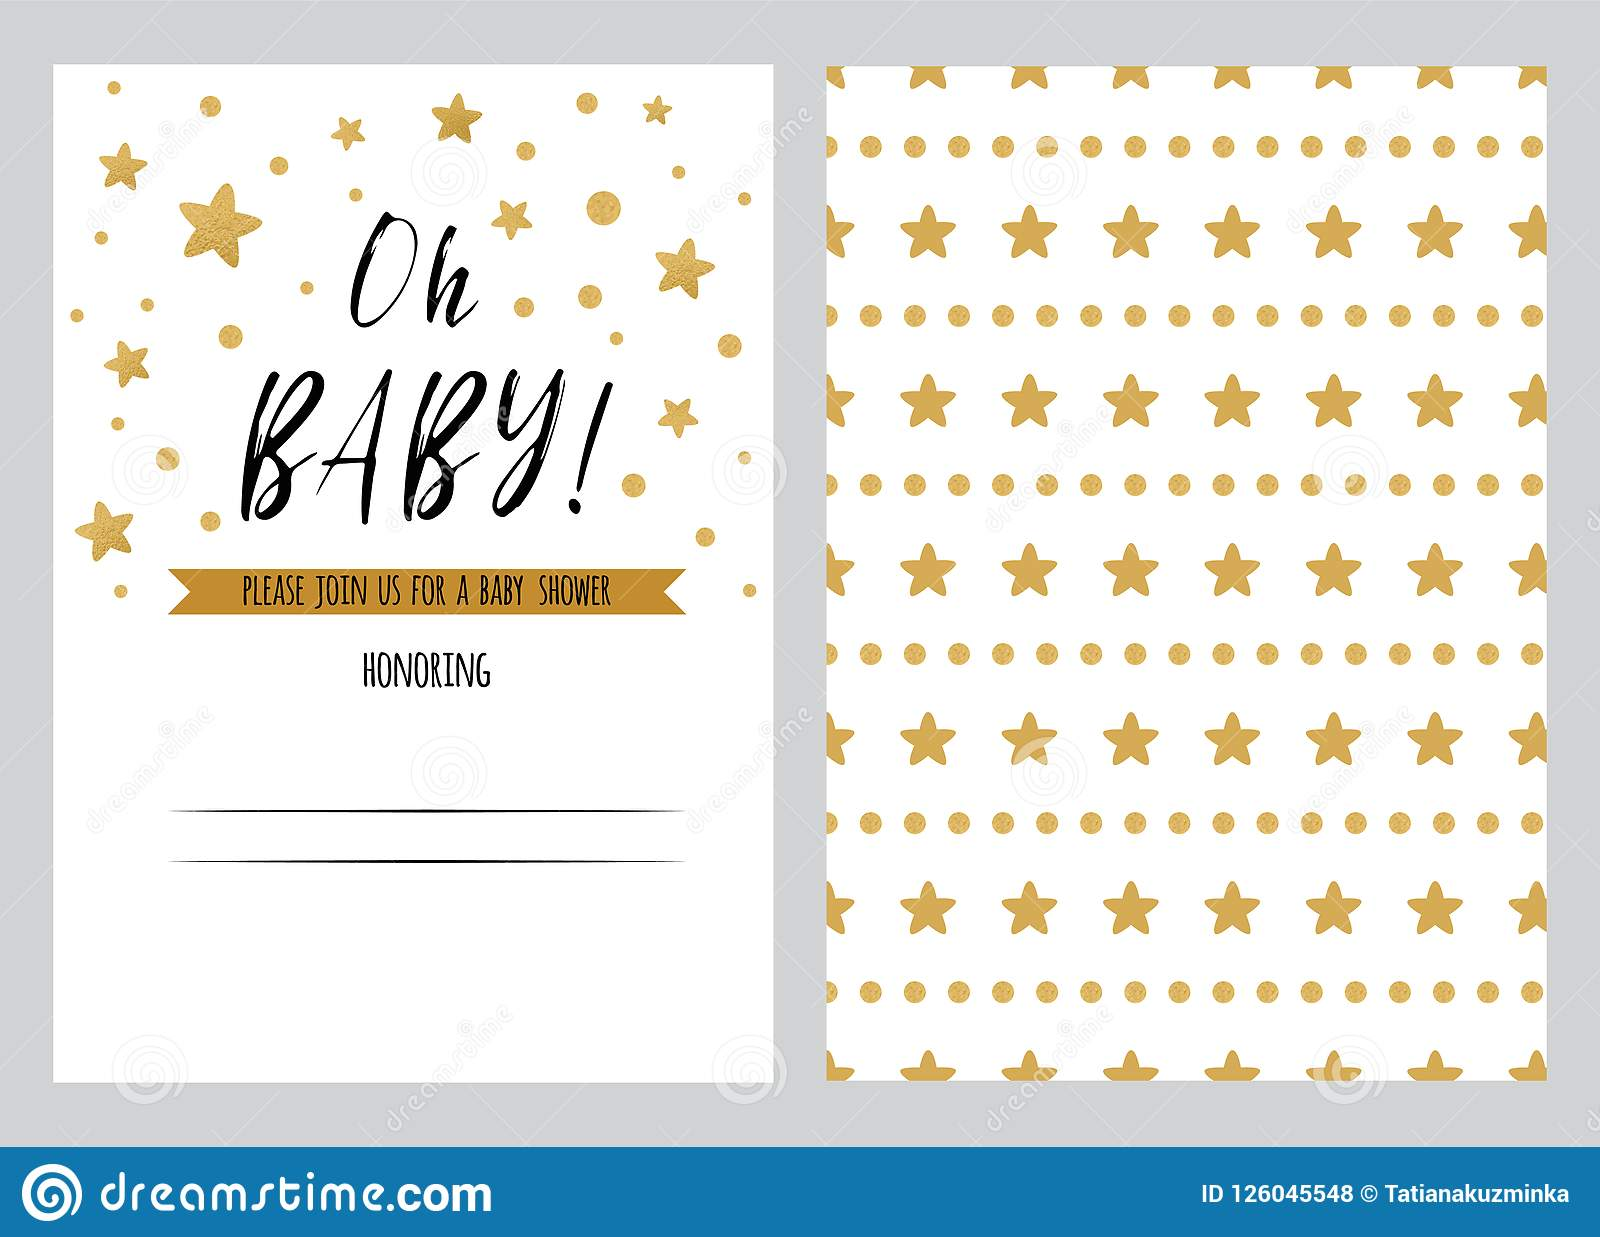 Baby Shower Invitation Template Oh Backgtround With Gold Golden